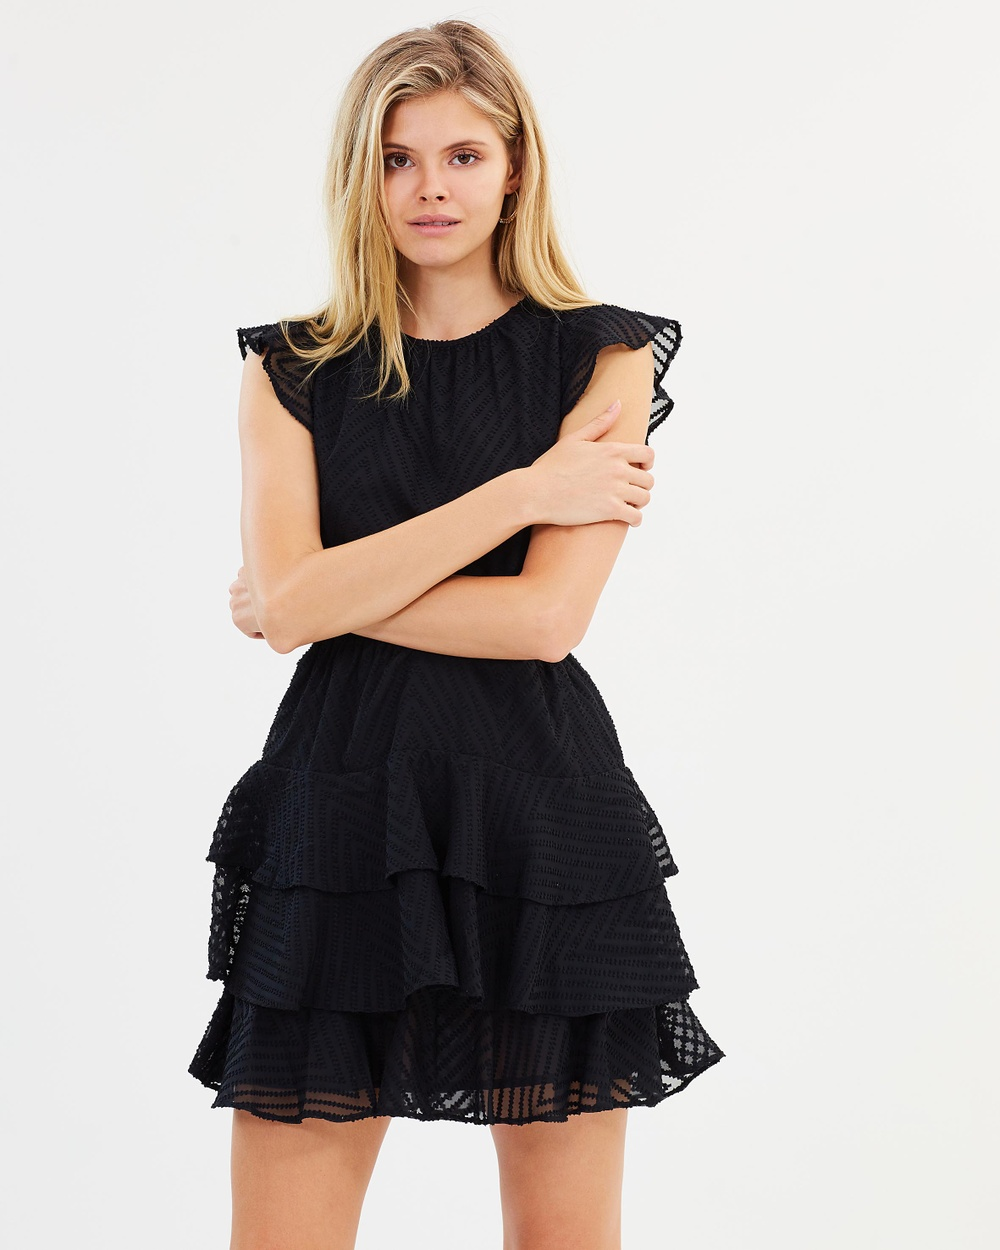 Atmos & Here ICONIC EXCLUSIVE Utopia Frill Mini Dress Dresses Black ICONIC EXCLUSIVE Utopia Frill Mini Dress